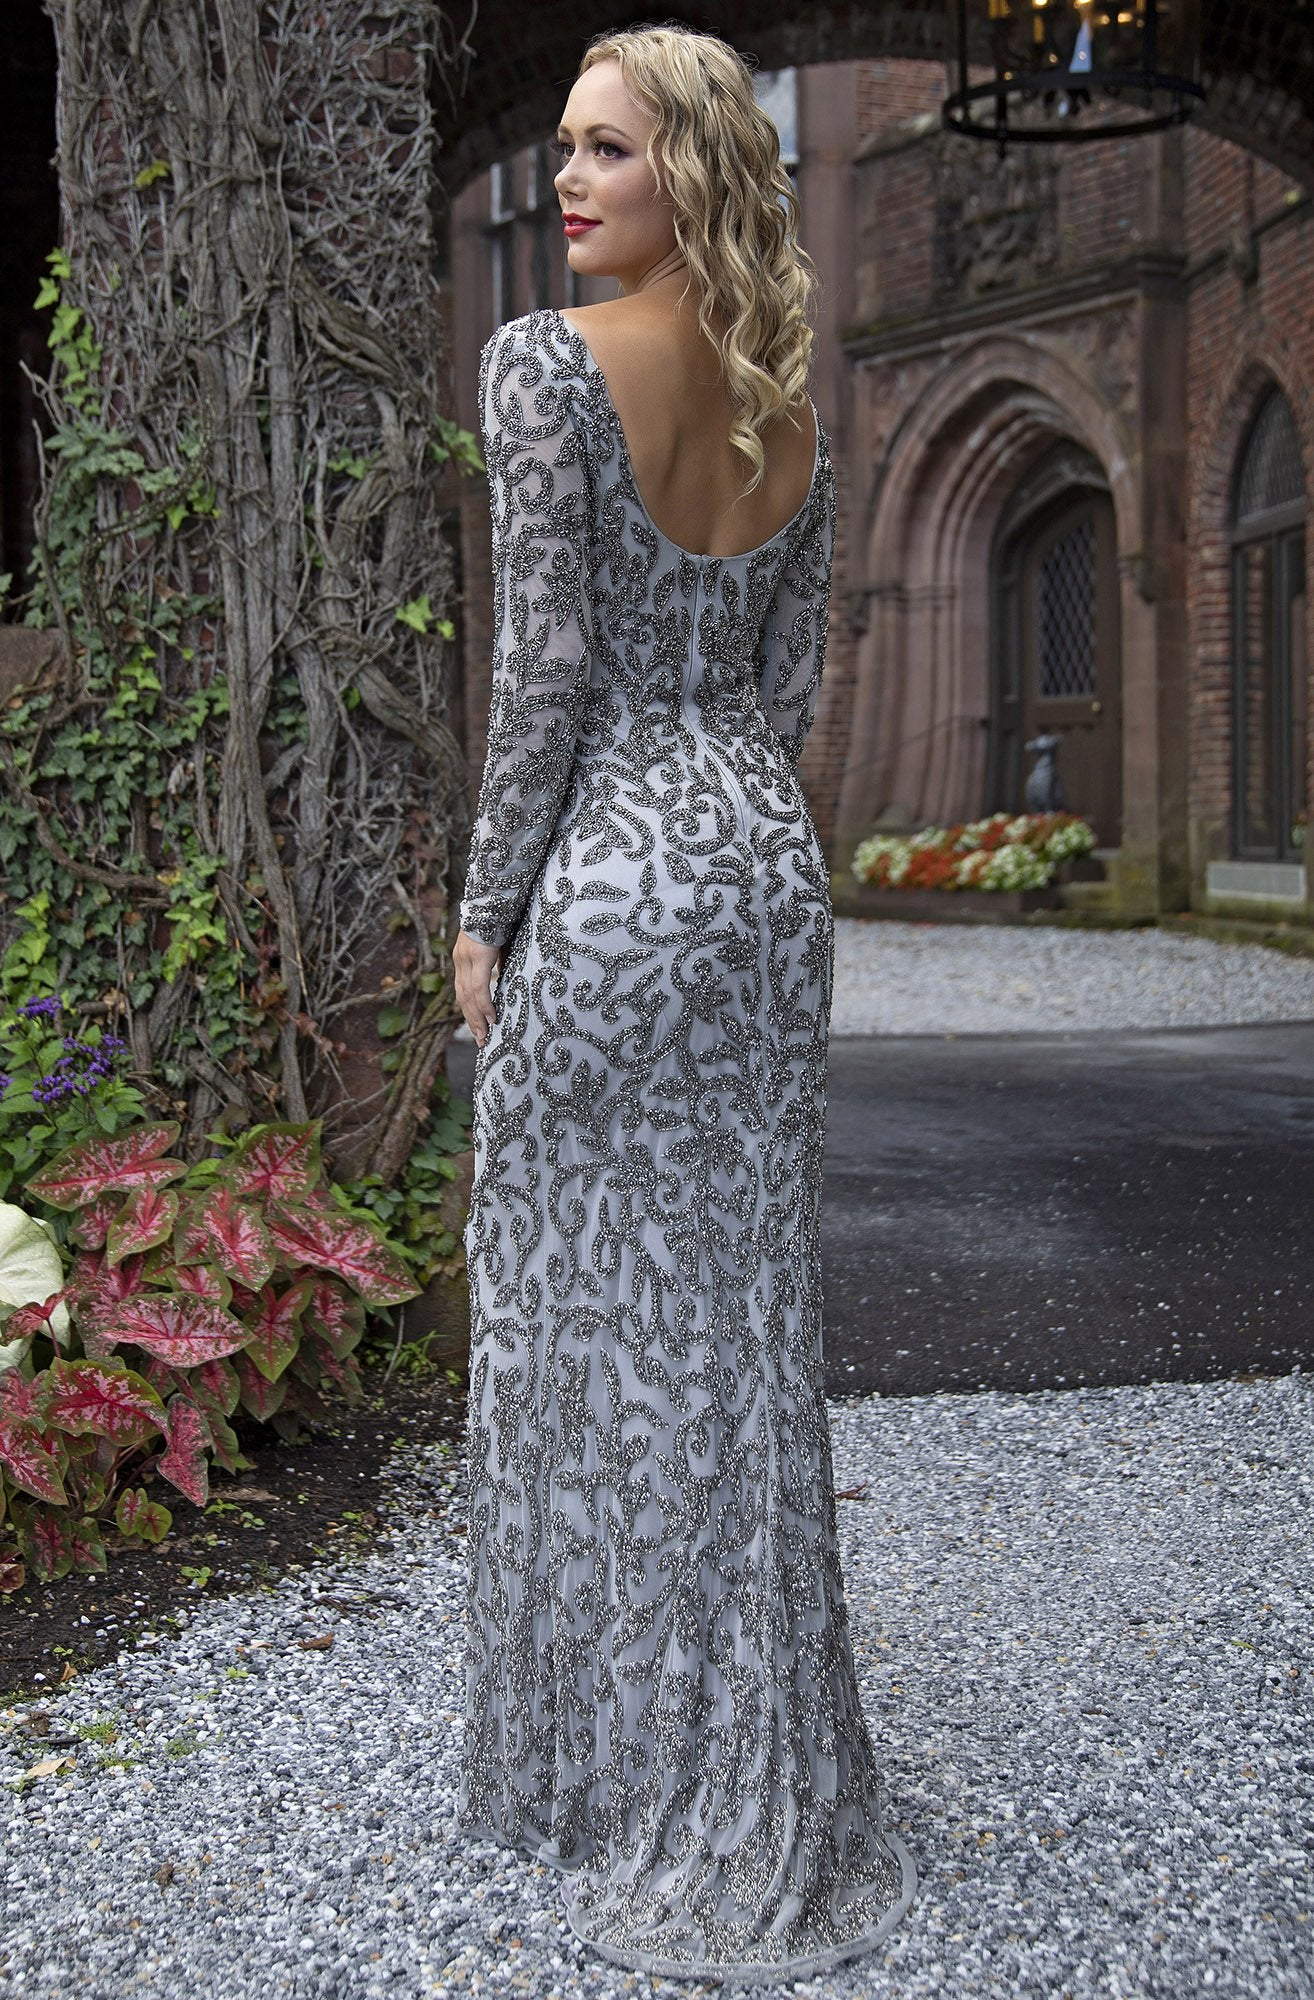 Primavera Couture - 3173 Scroll Motif Beaded Long Sleeve Sheath Gown In Silver and Gray